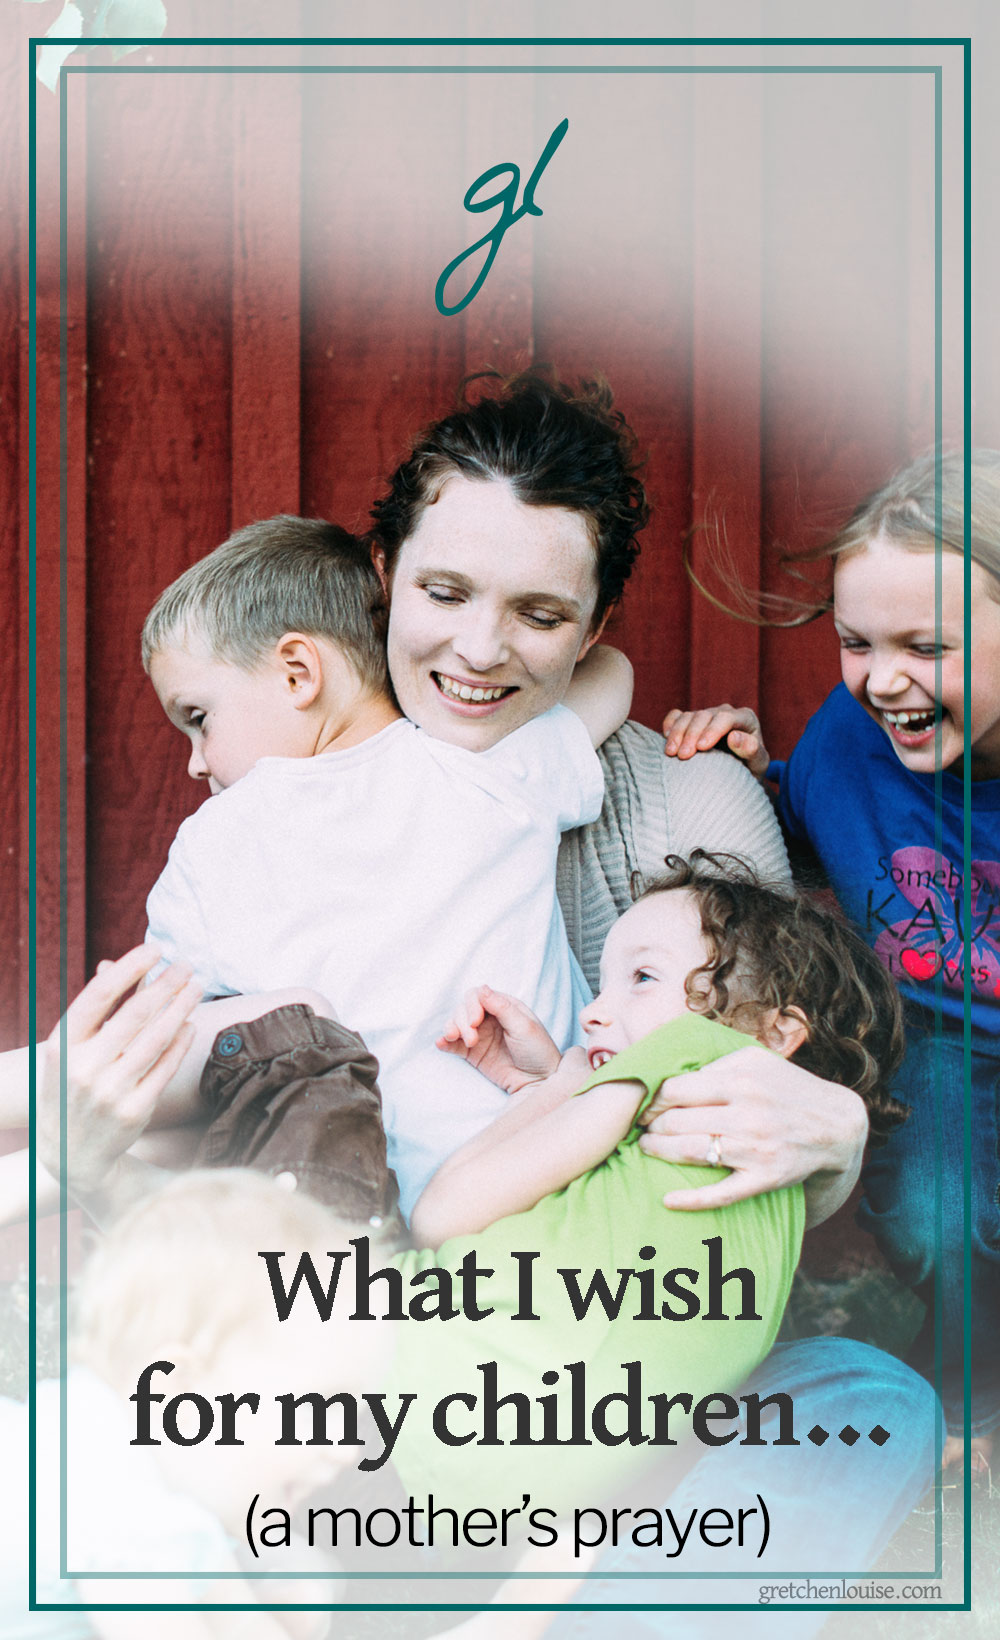 What I wish for my children… (a mother's prayer) via @GretLouise